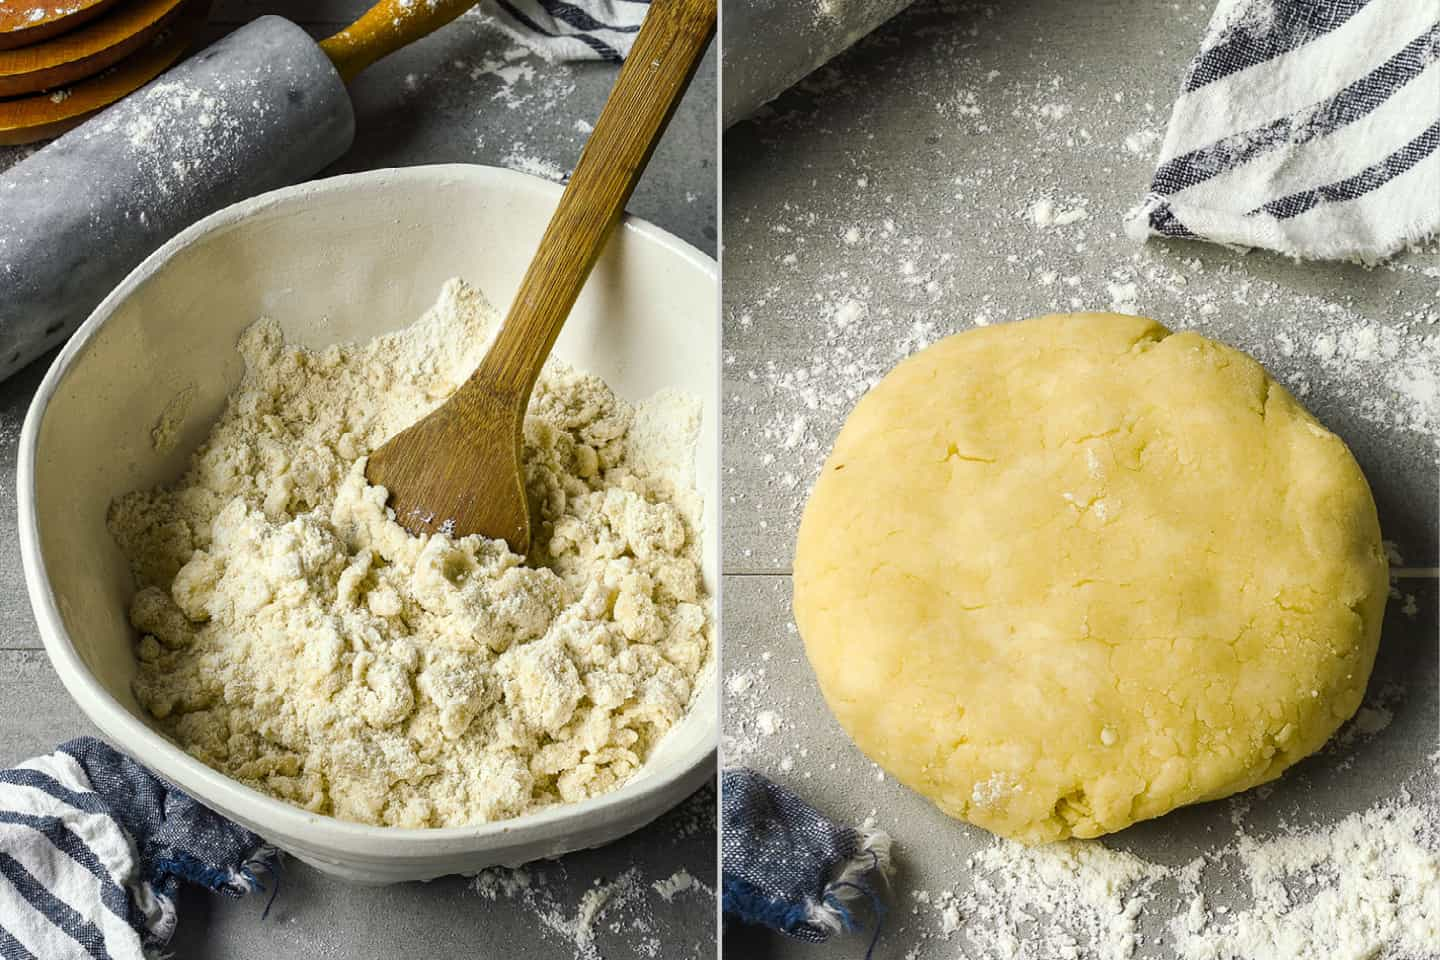 Pie curst mix and dough in side by side photo.